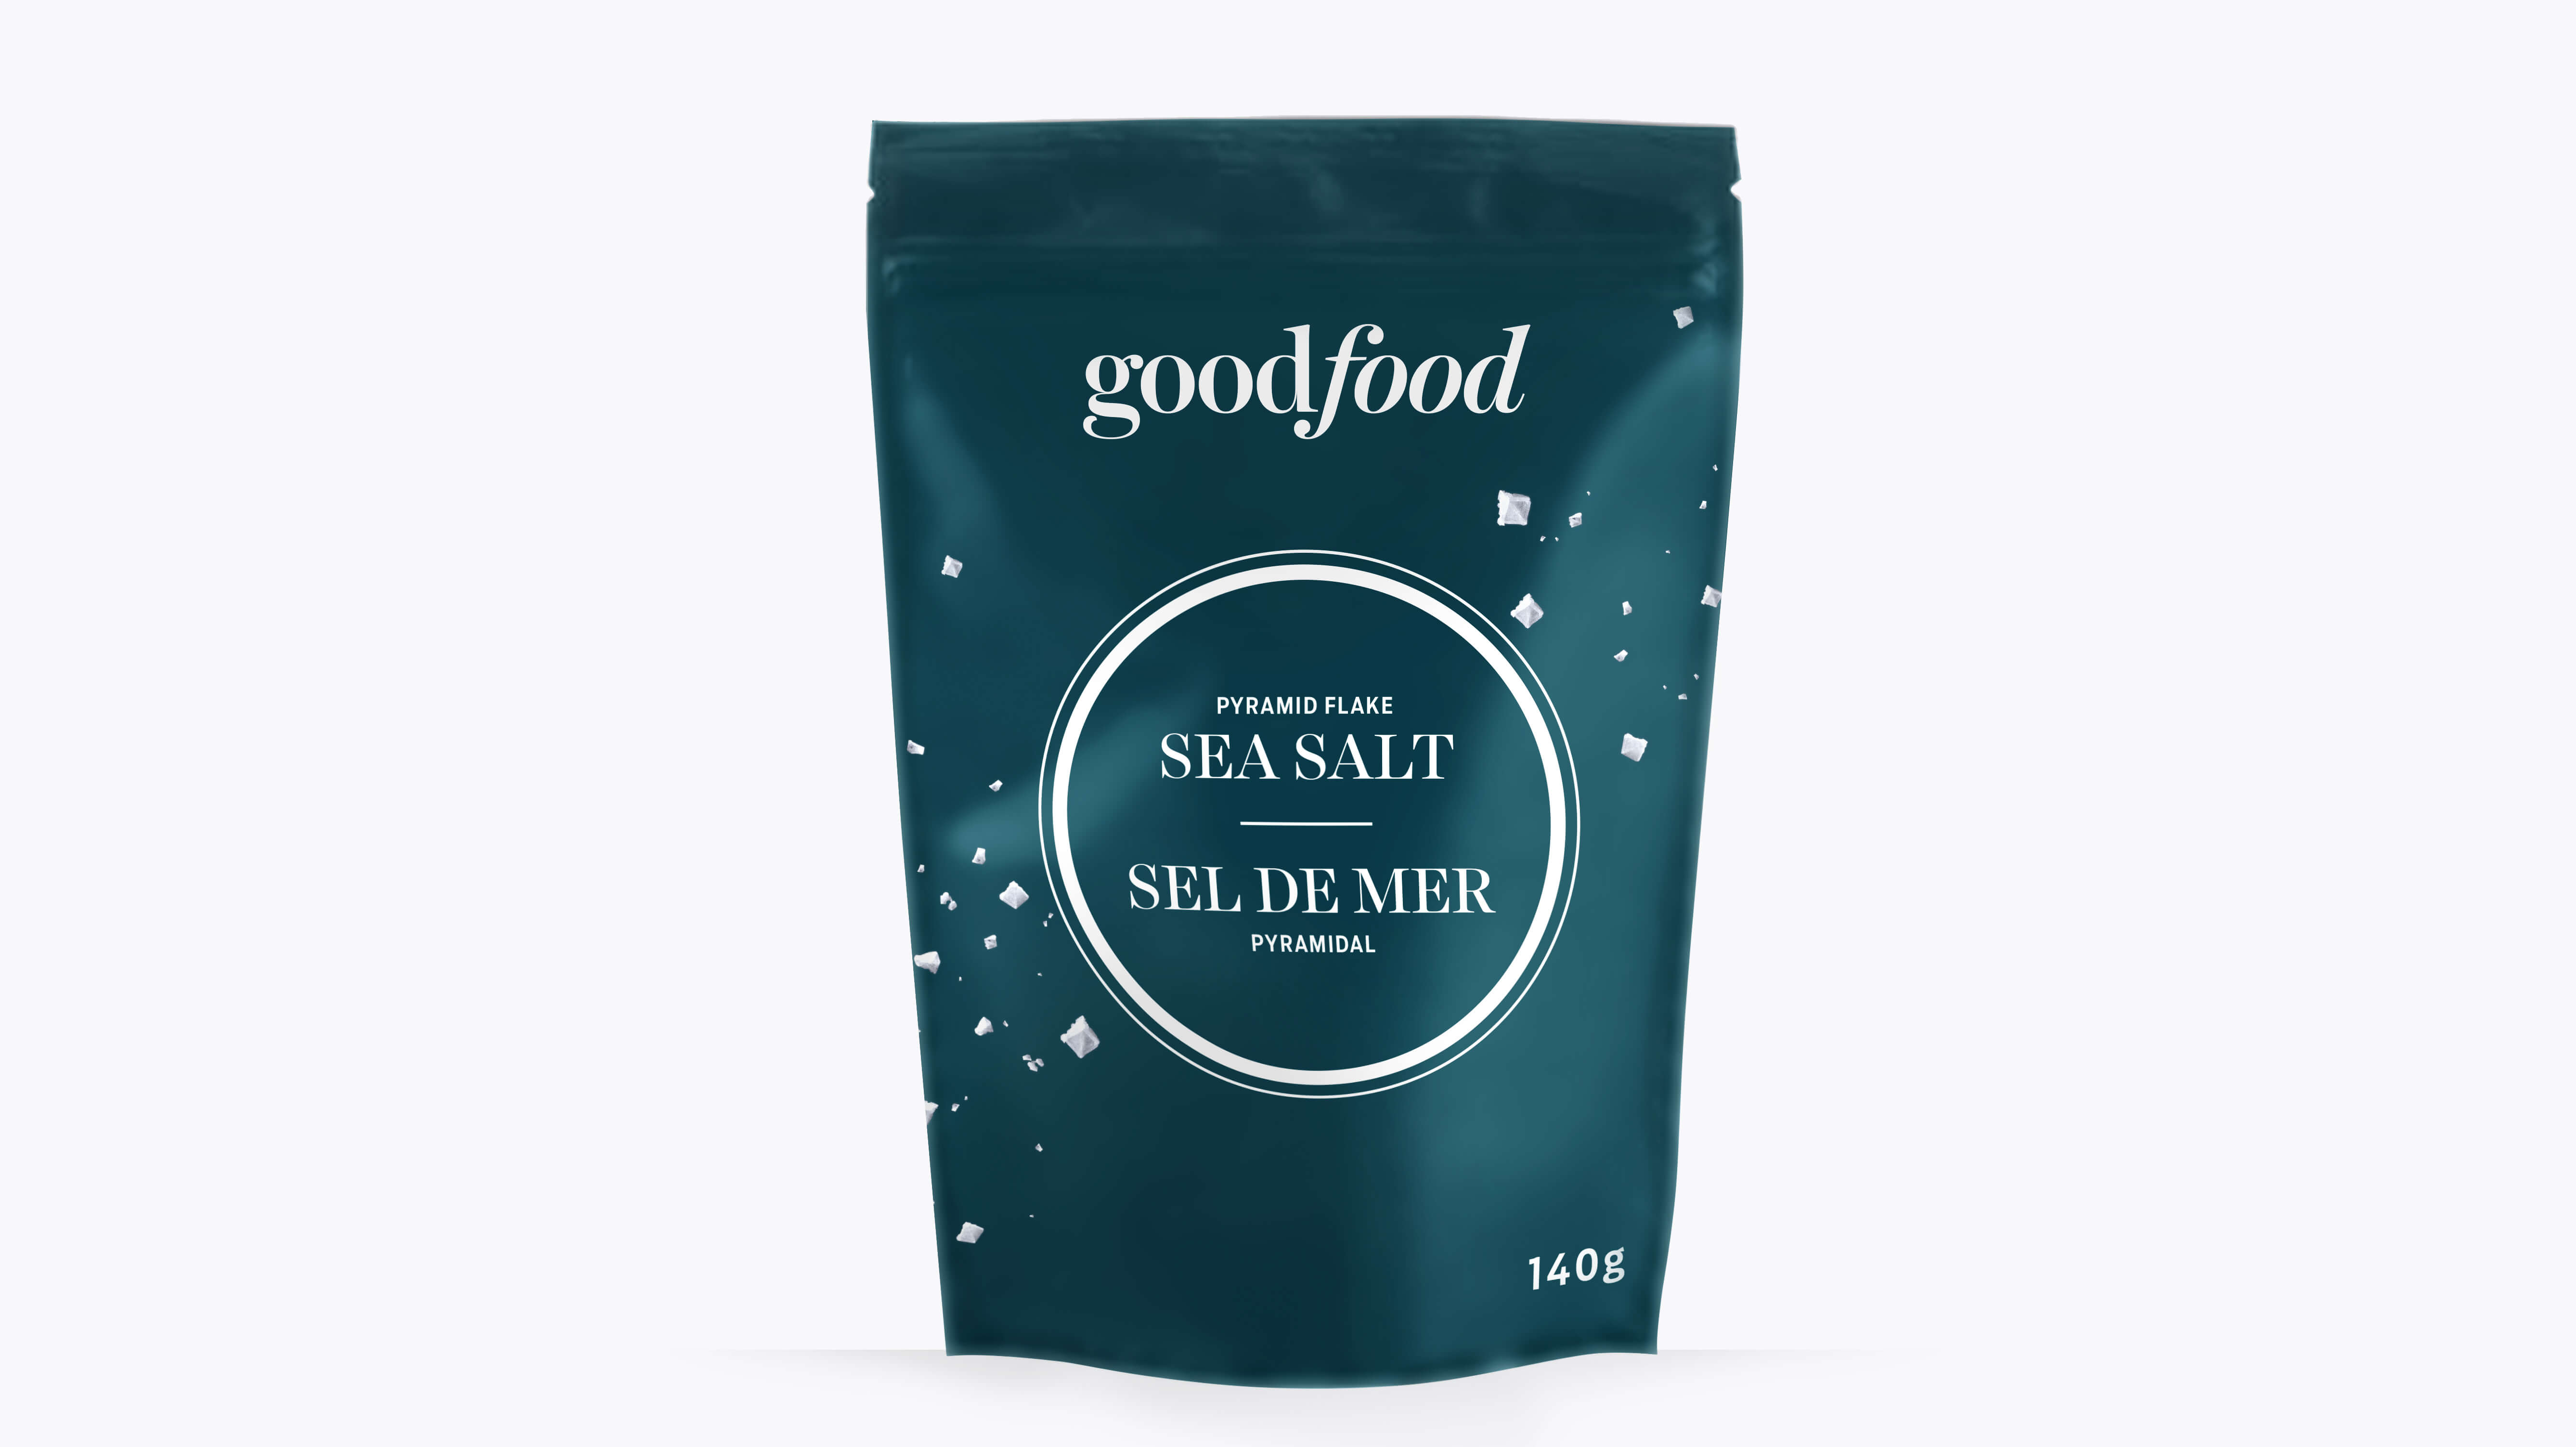 A bag of Goodfood sea salt